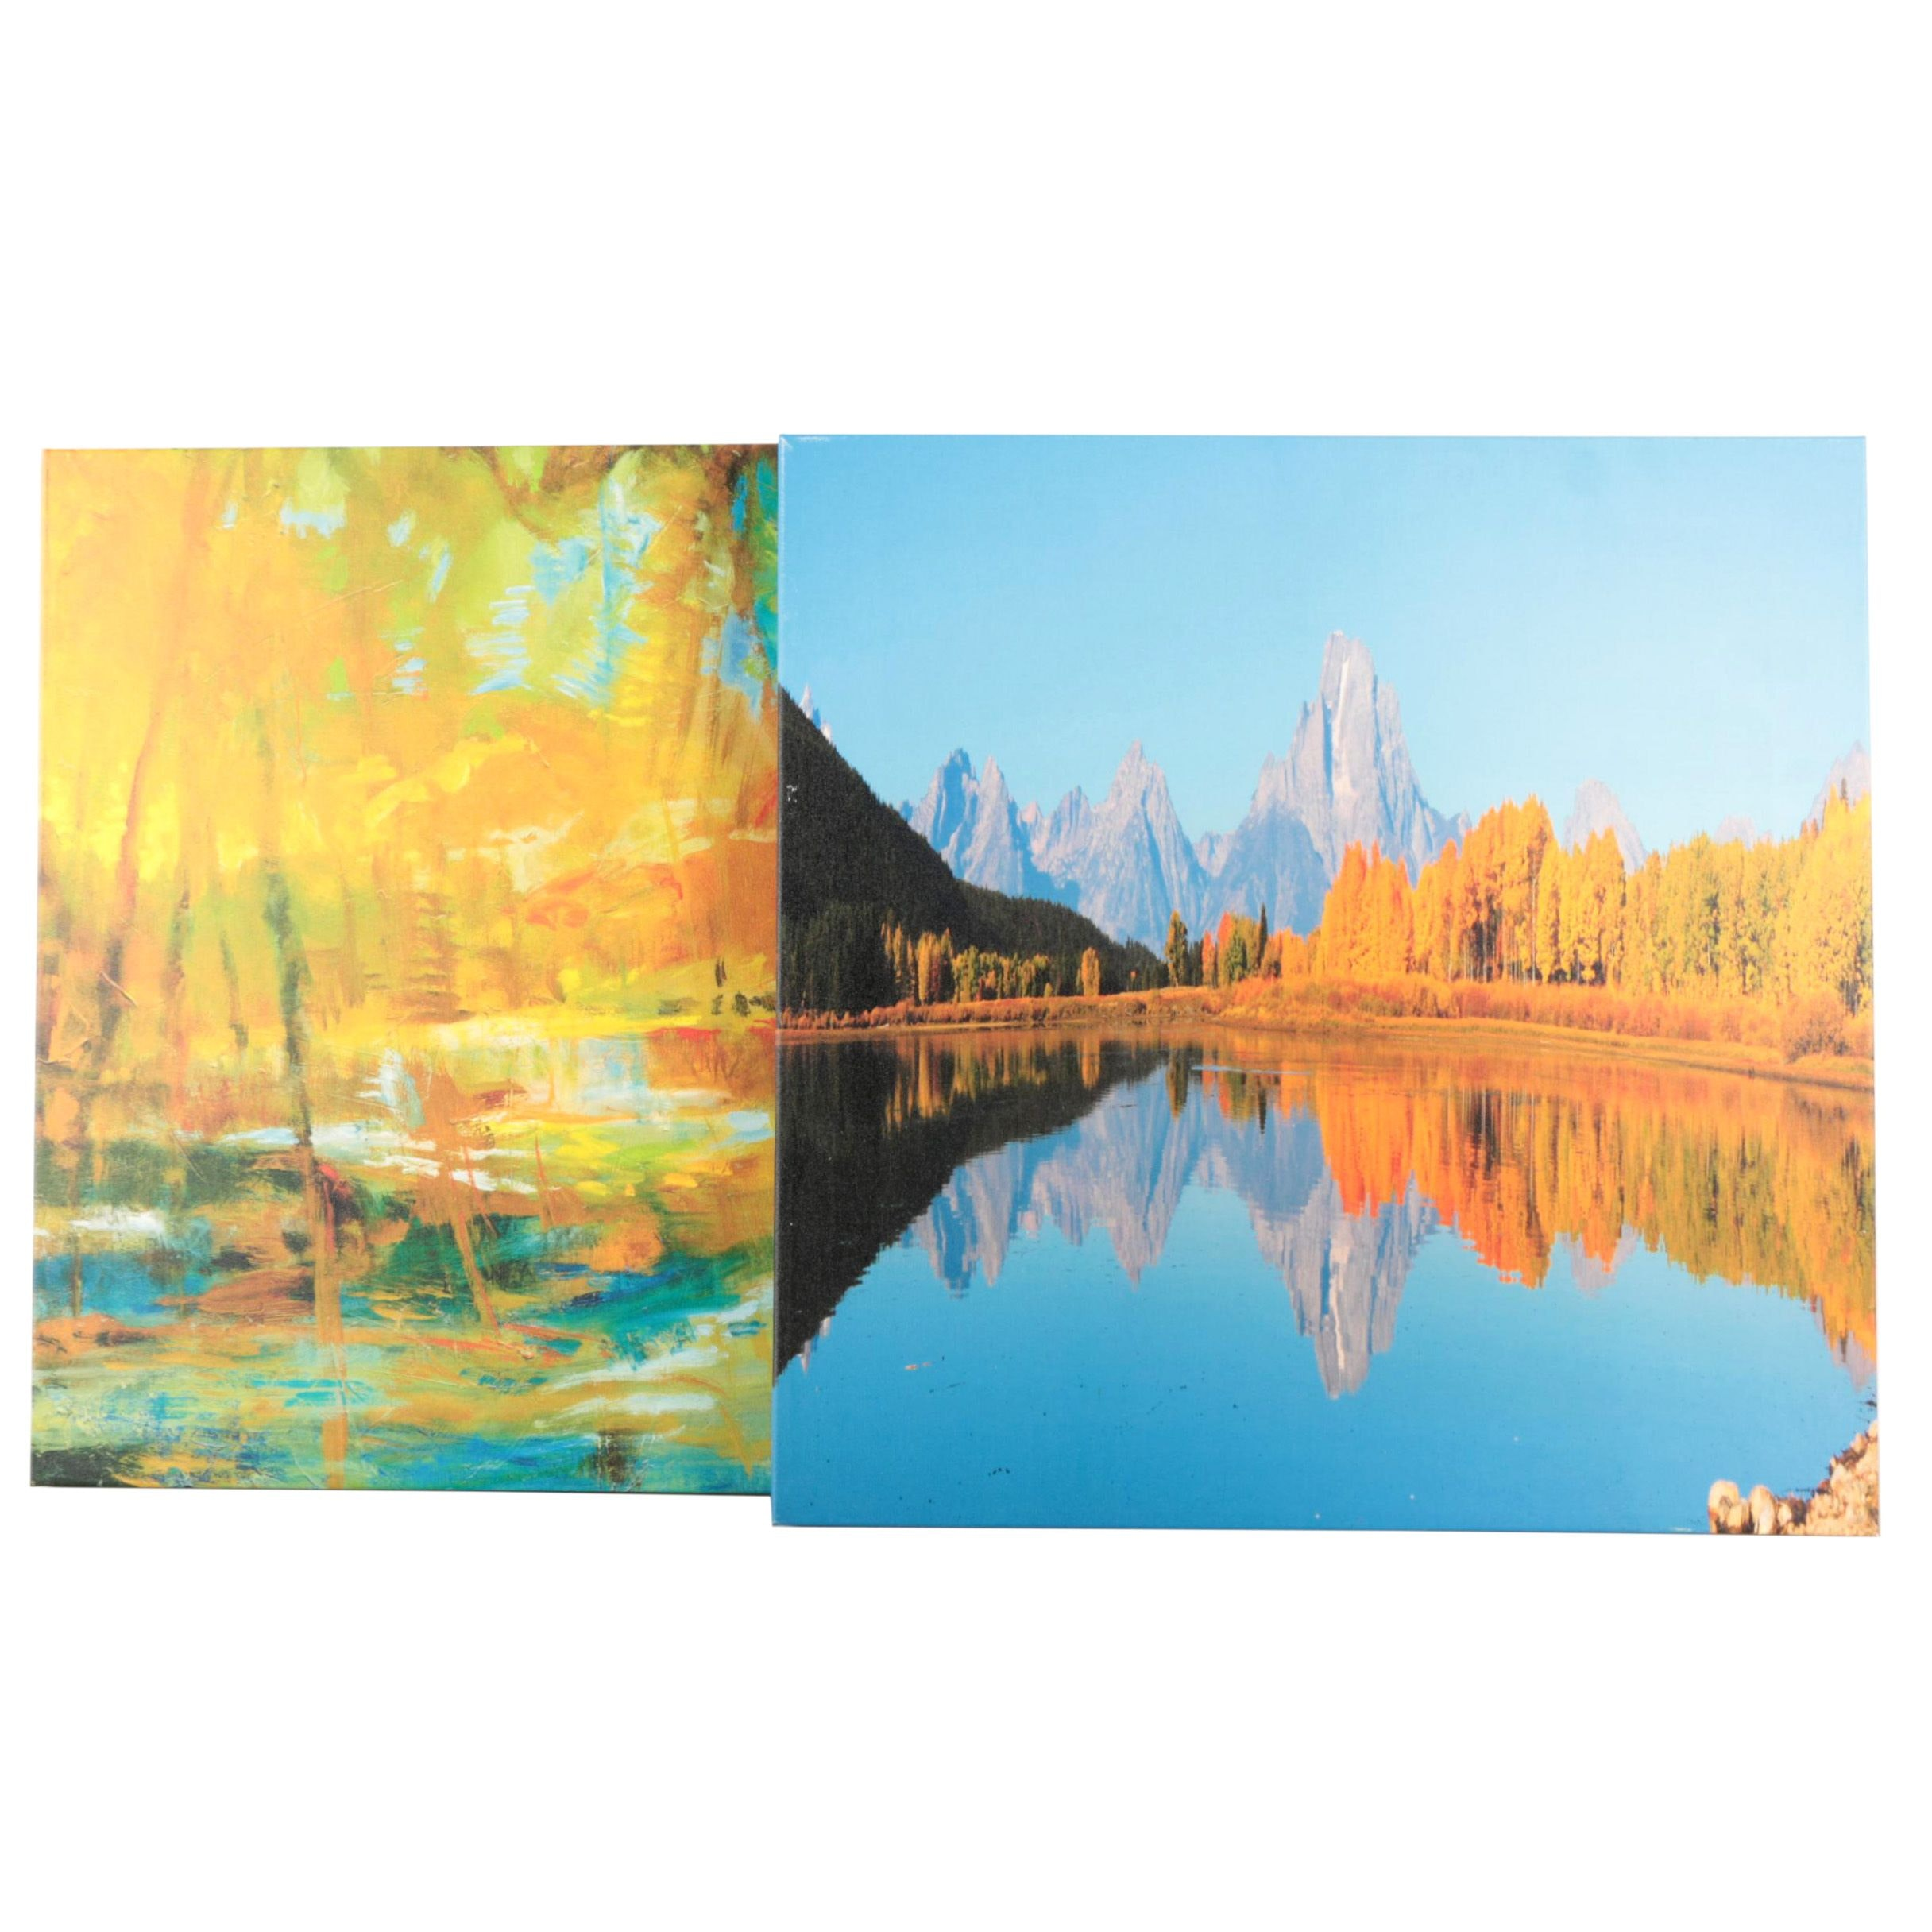 Giclees on Canvas of a Landscape and Abstract Scene